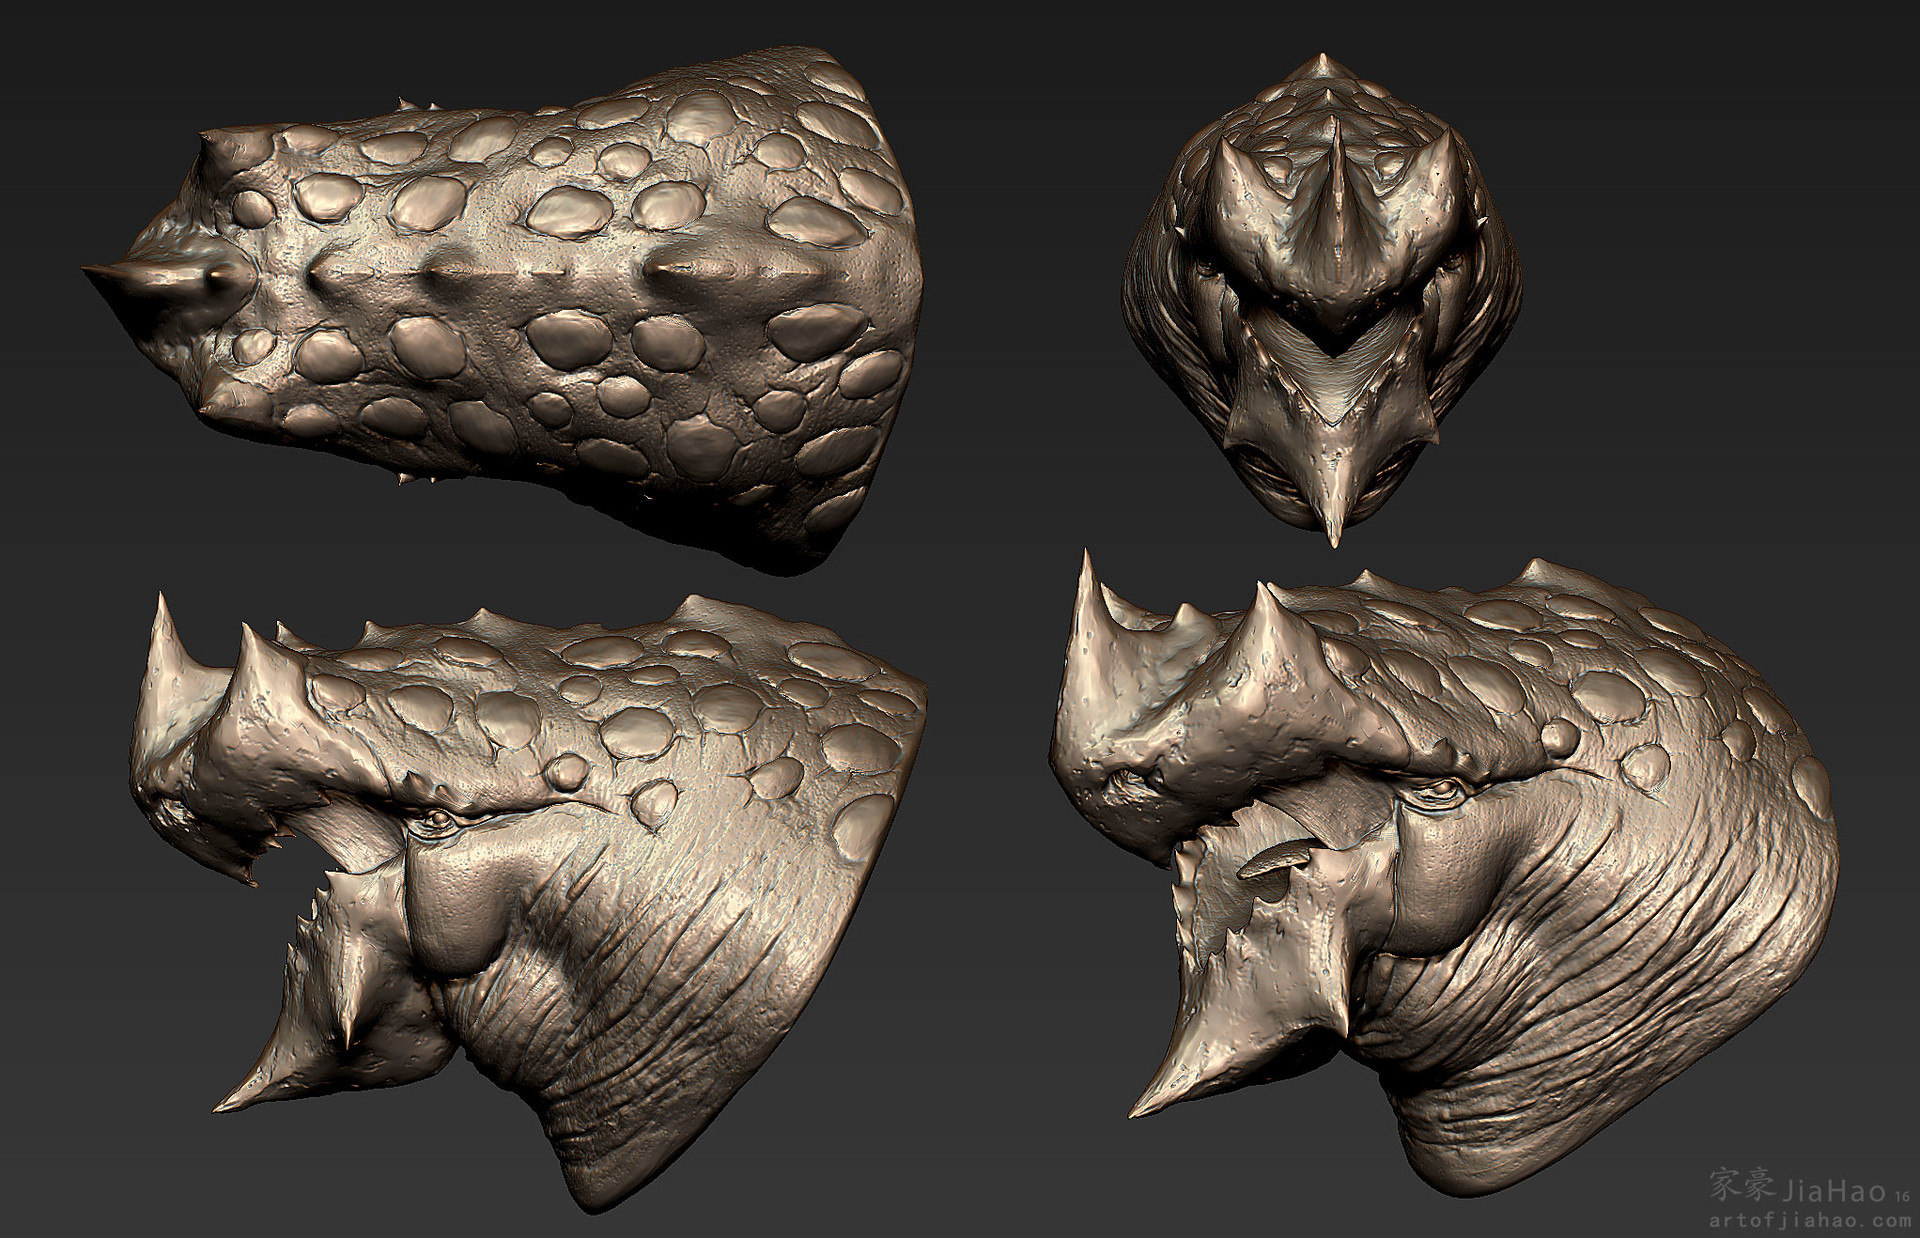 Jia hao 2016 04 toughbeak presentationzbrush